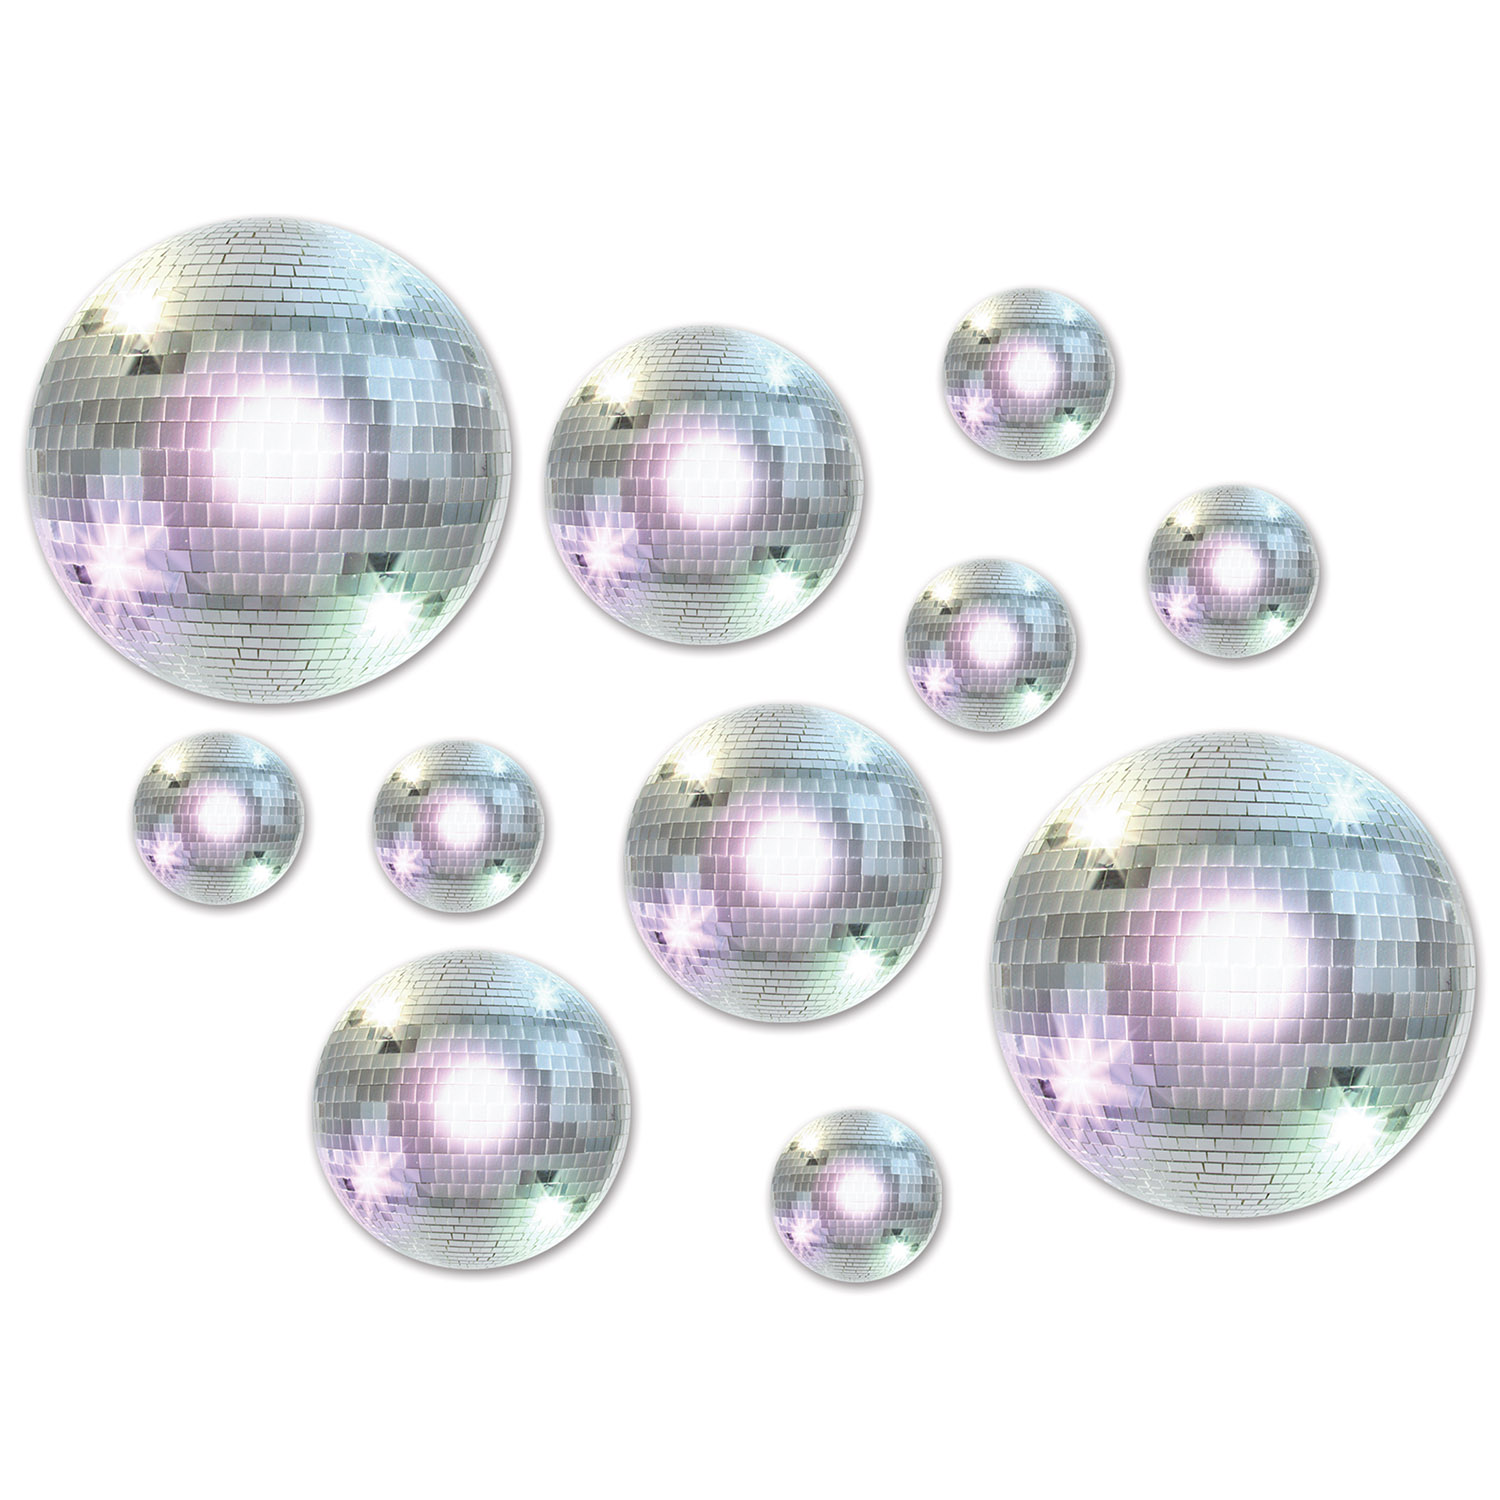 Disco Ball Decorations Cheap: 1970's Themed New Year's Eve Party Ideas, Page 2